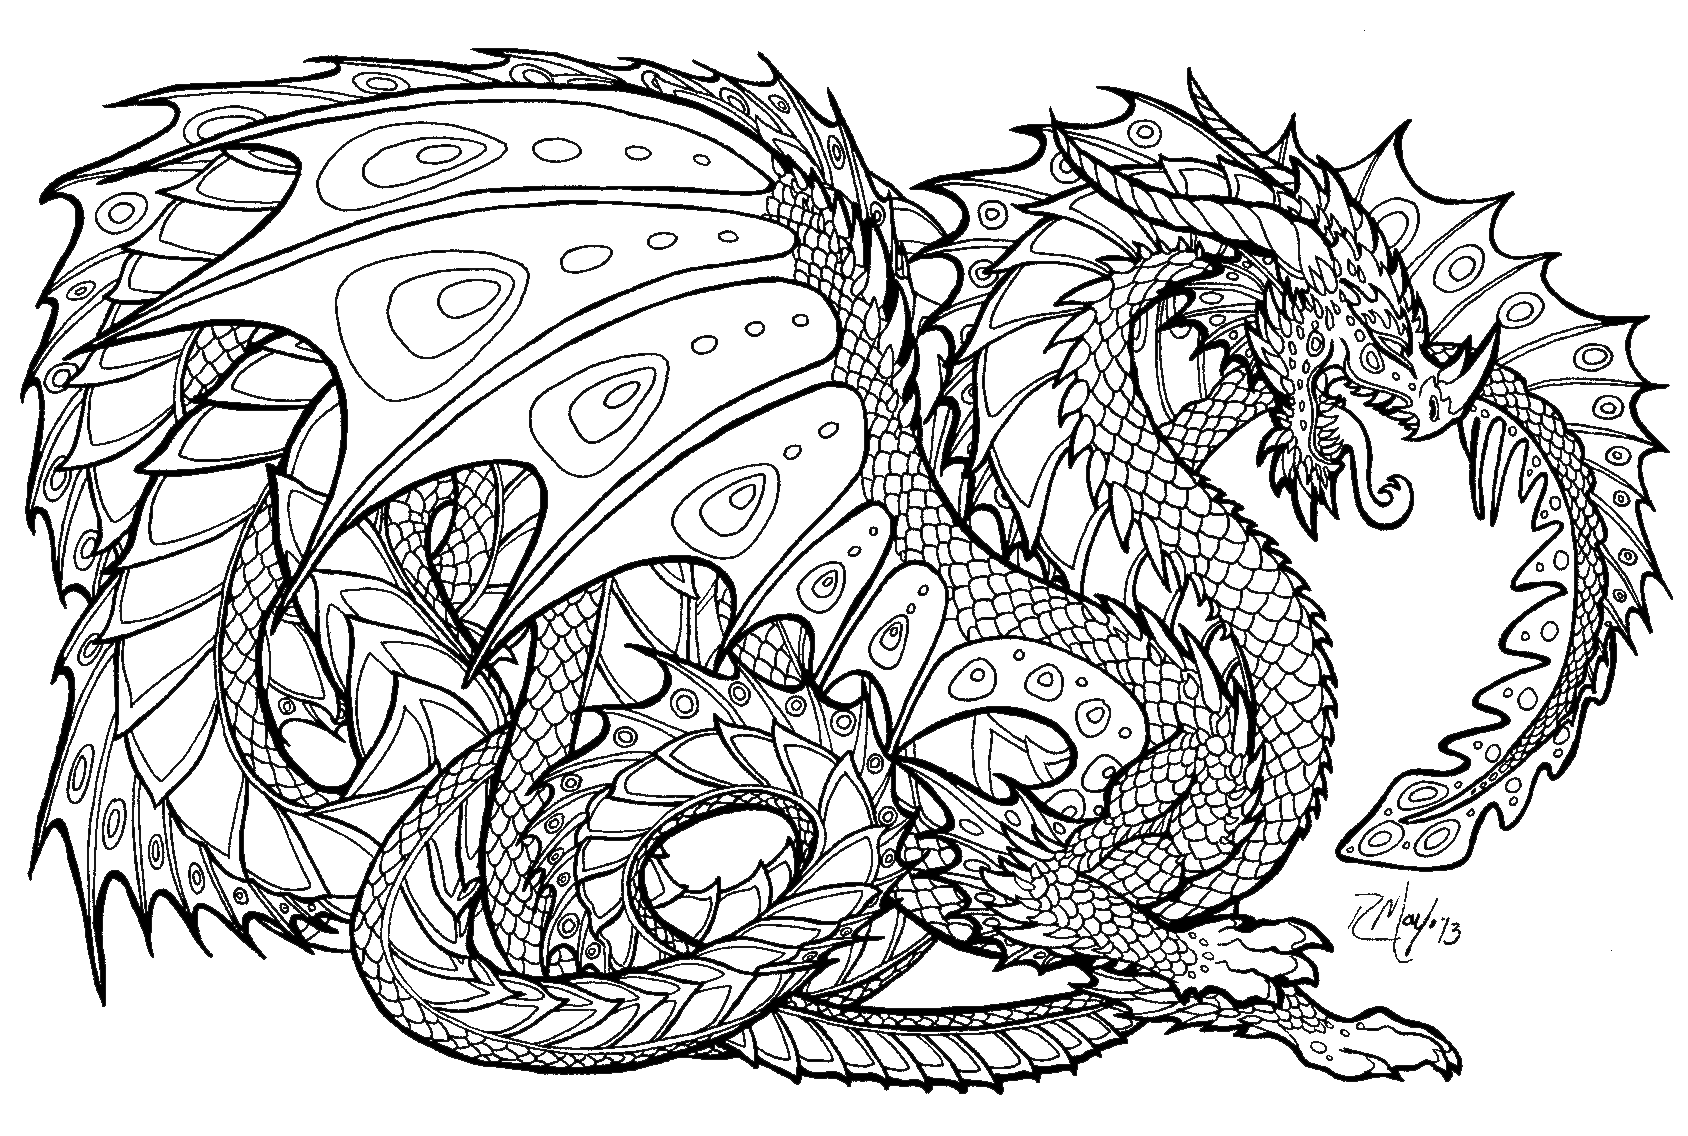 dragon coloring pages for adults to download and print for free - Dragon Coloring Pages For Adults